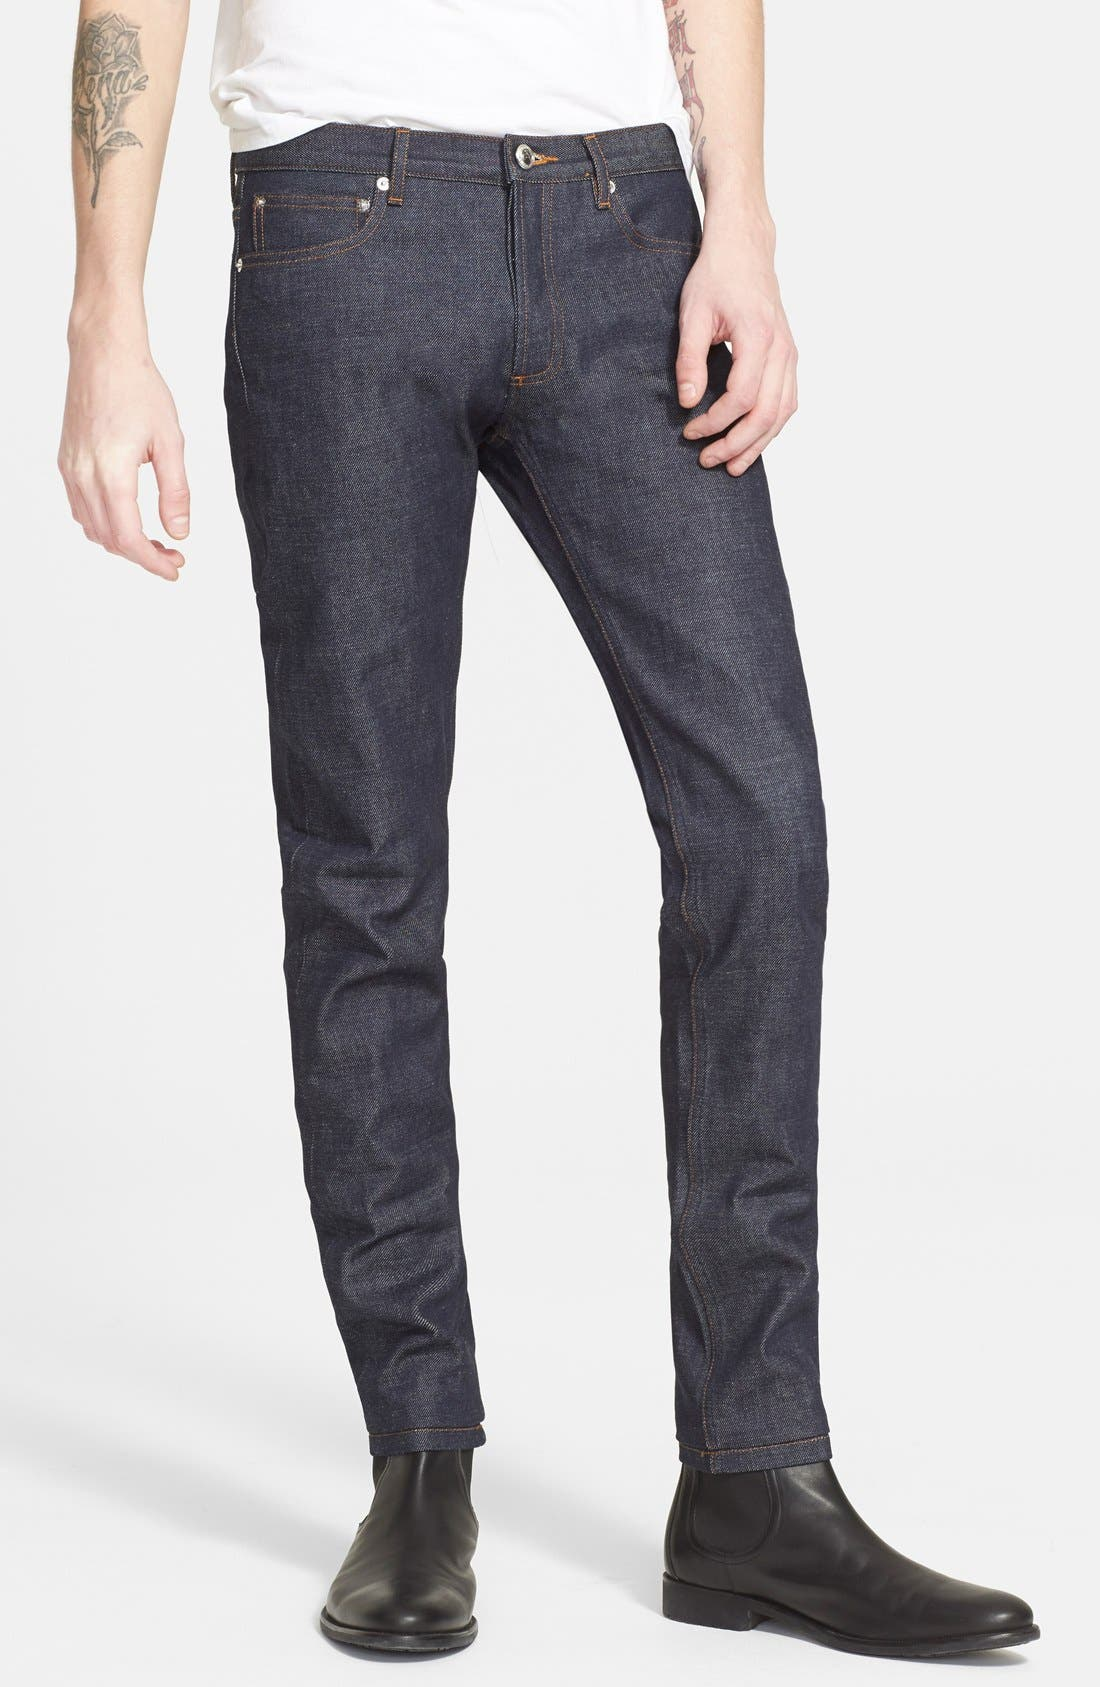 Alternate Image 1 Selected - A.P.C. Petit Standard Slim Fit Selvedge Jeans (Indigo)